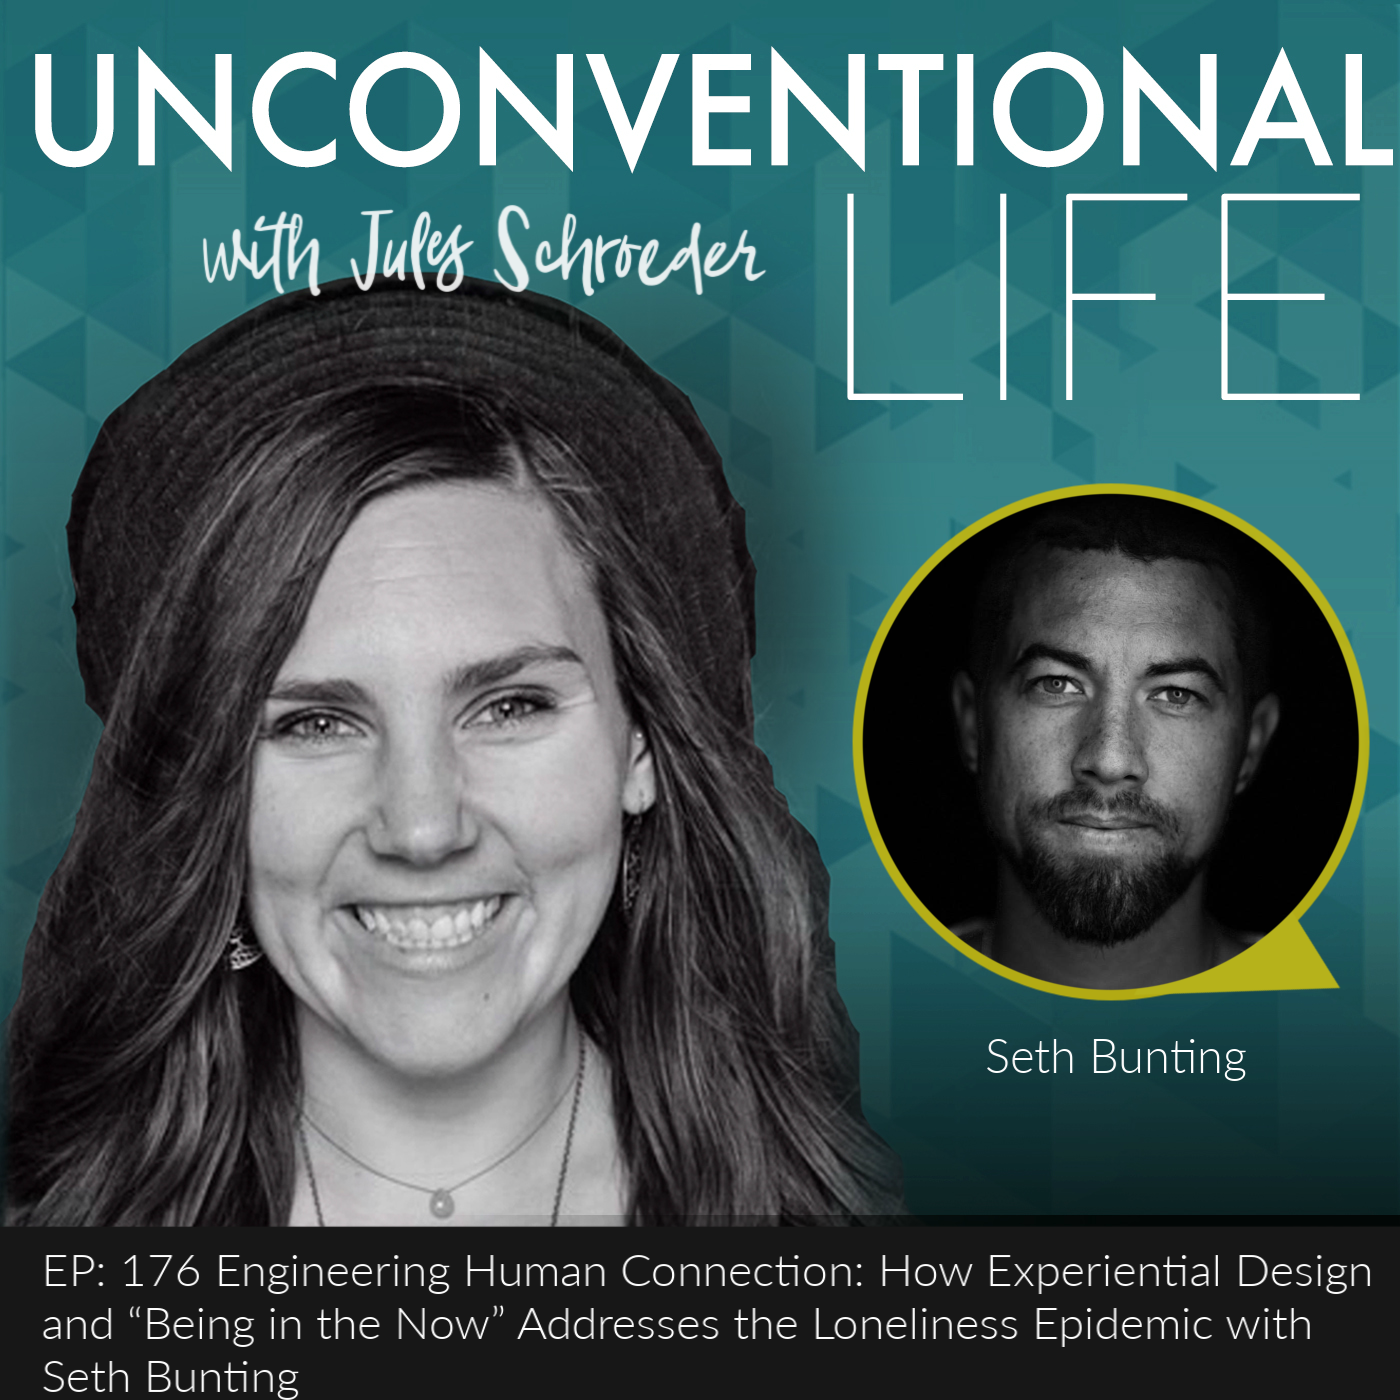 EP.176 Engineering Human Connection with Seth Bunting